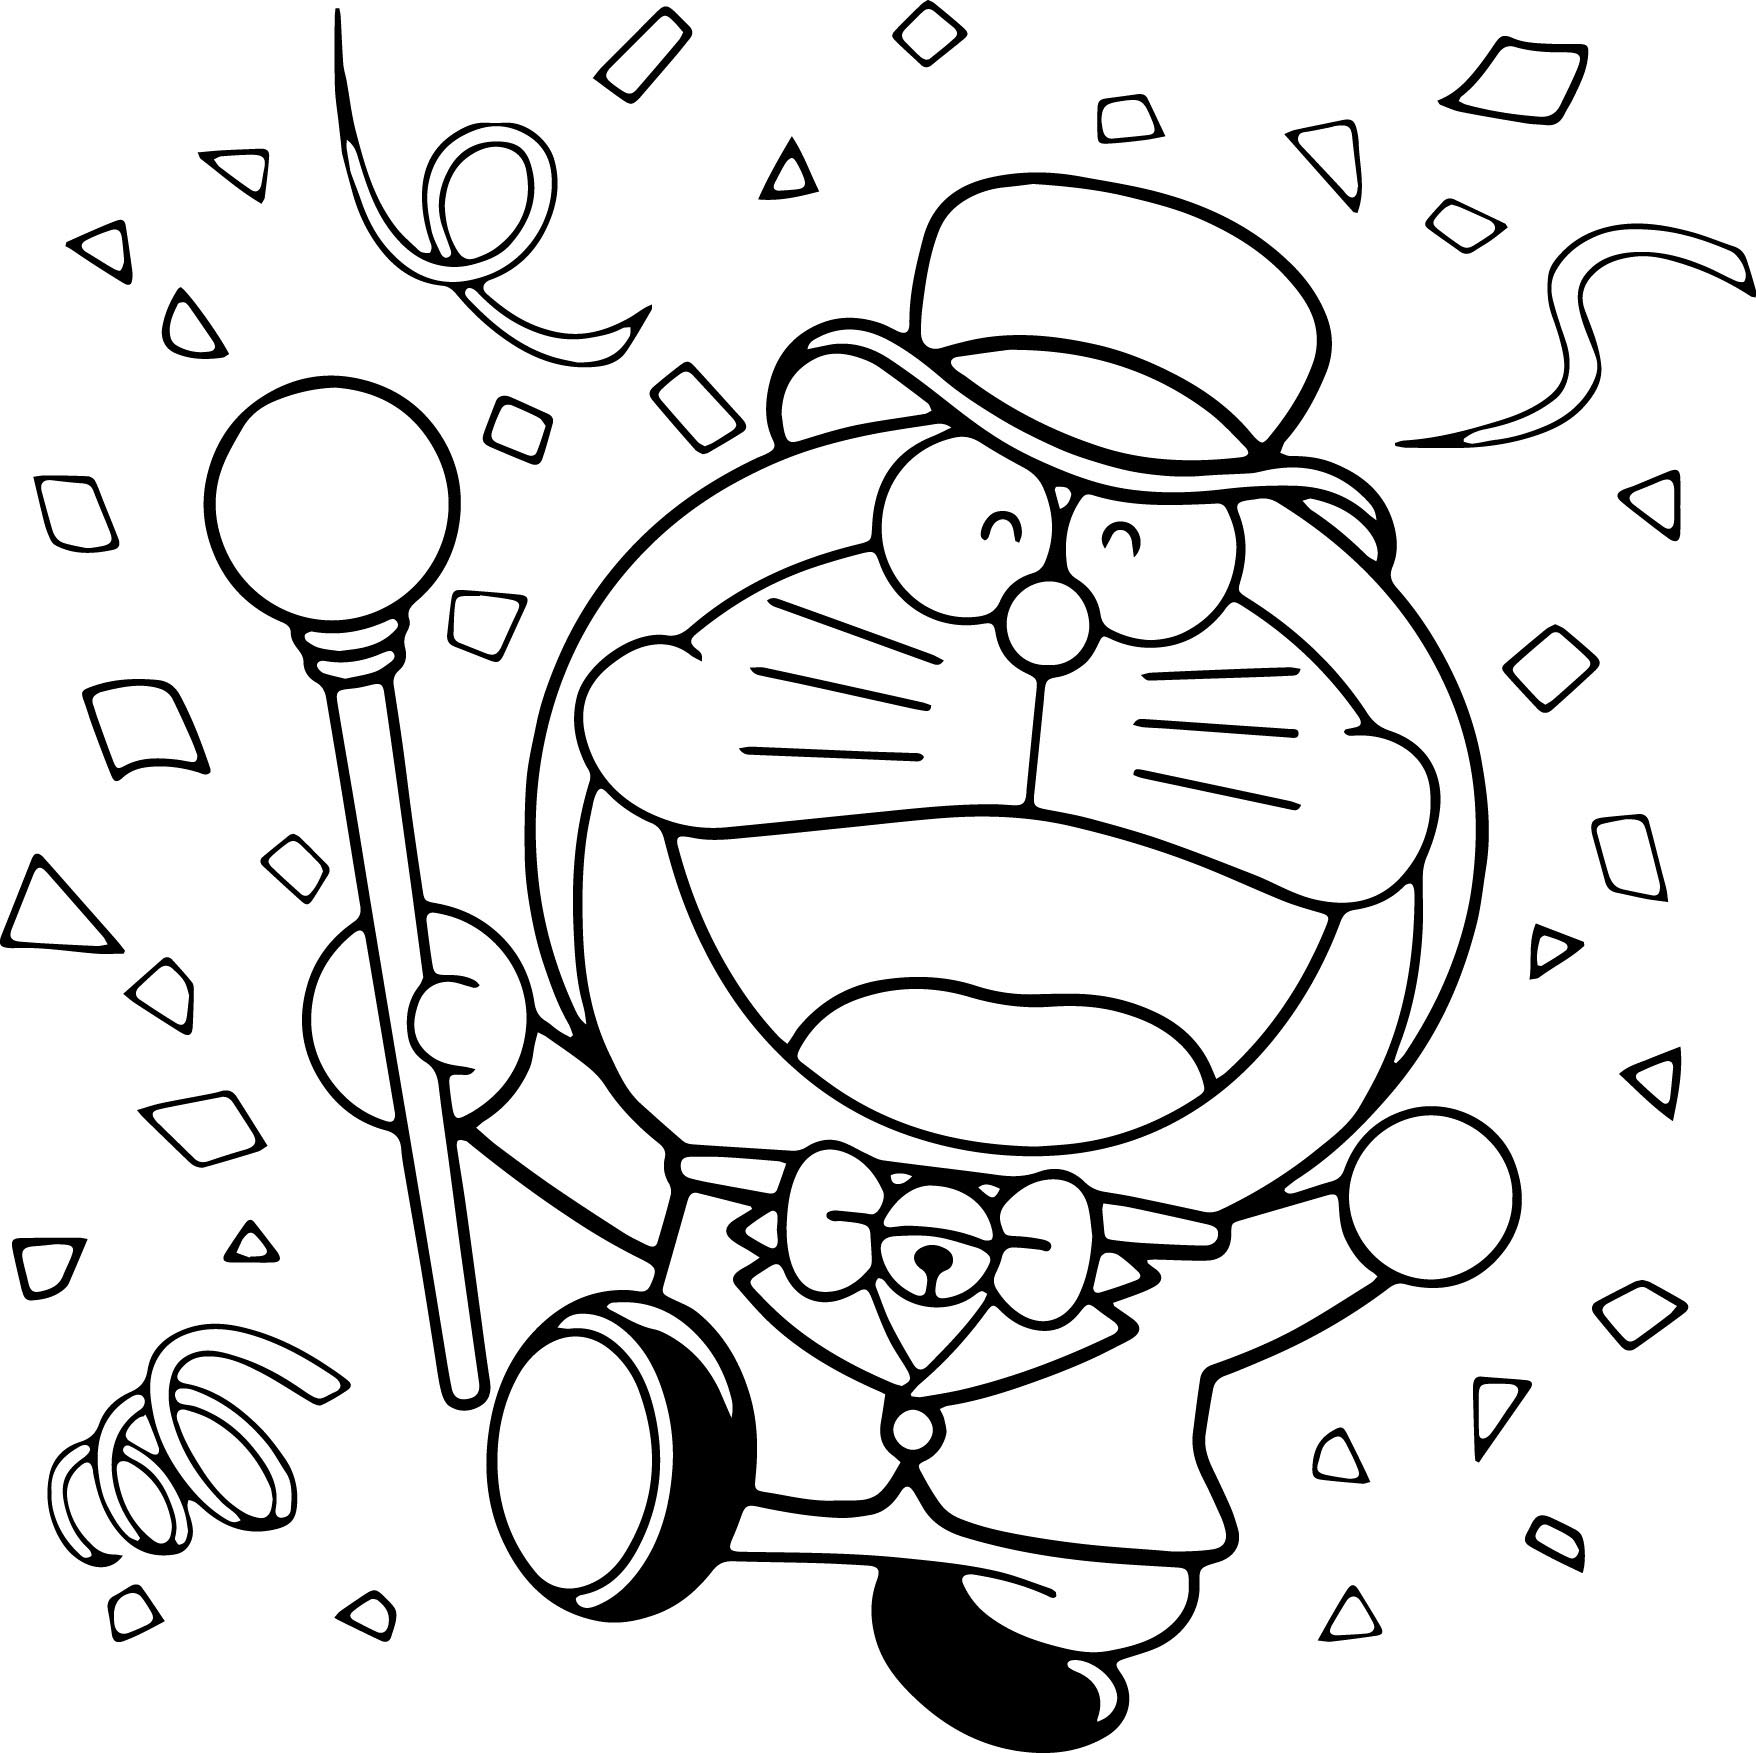 Painting pages to print - Doraemon Painting Pages Free Doraemon Coloring Pages To Print For Kids Download Print And Color